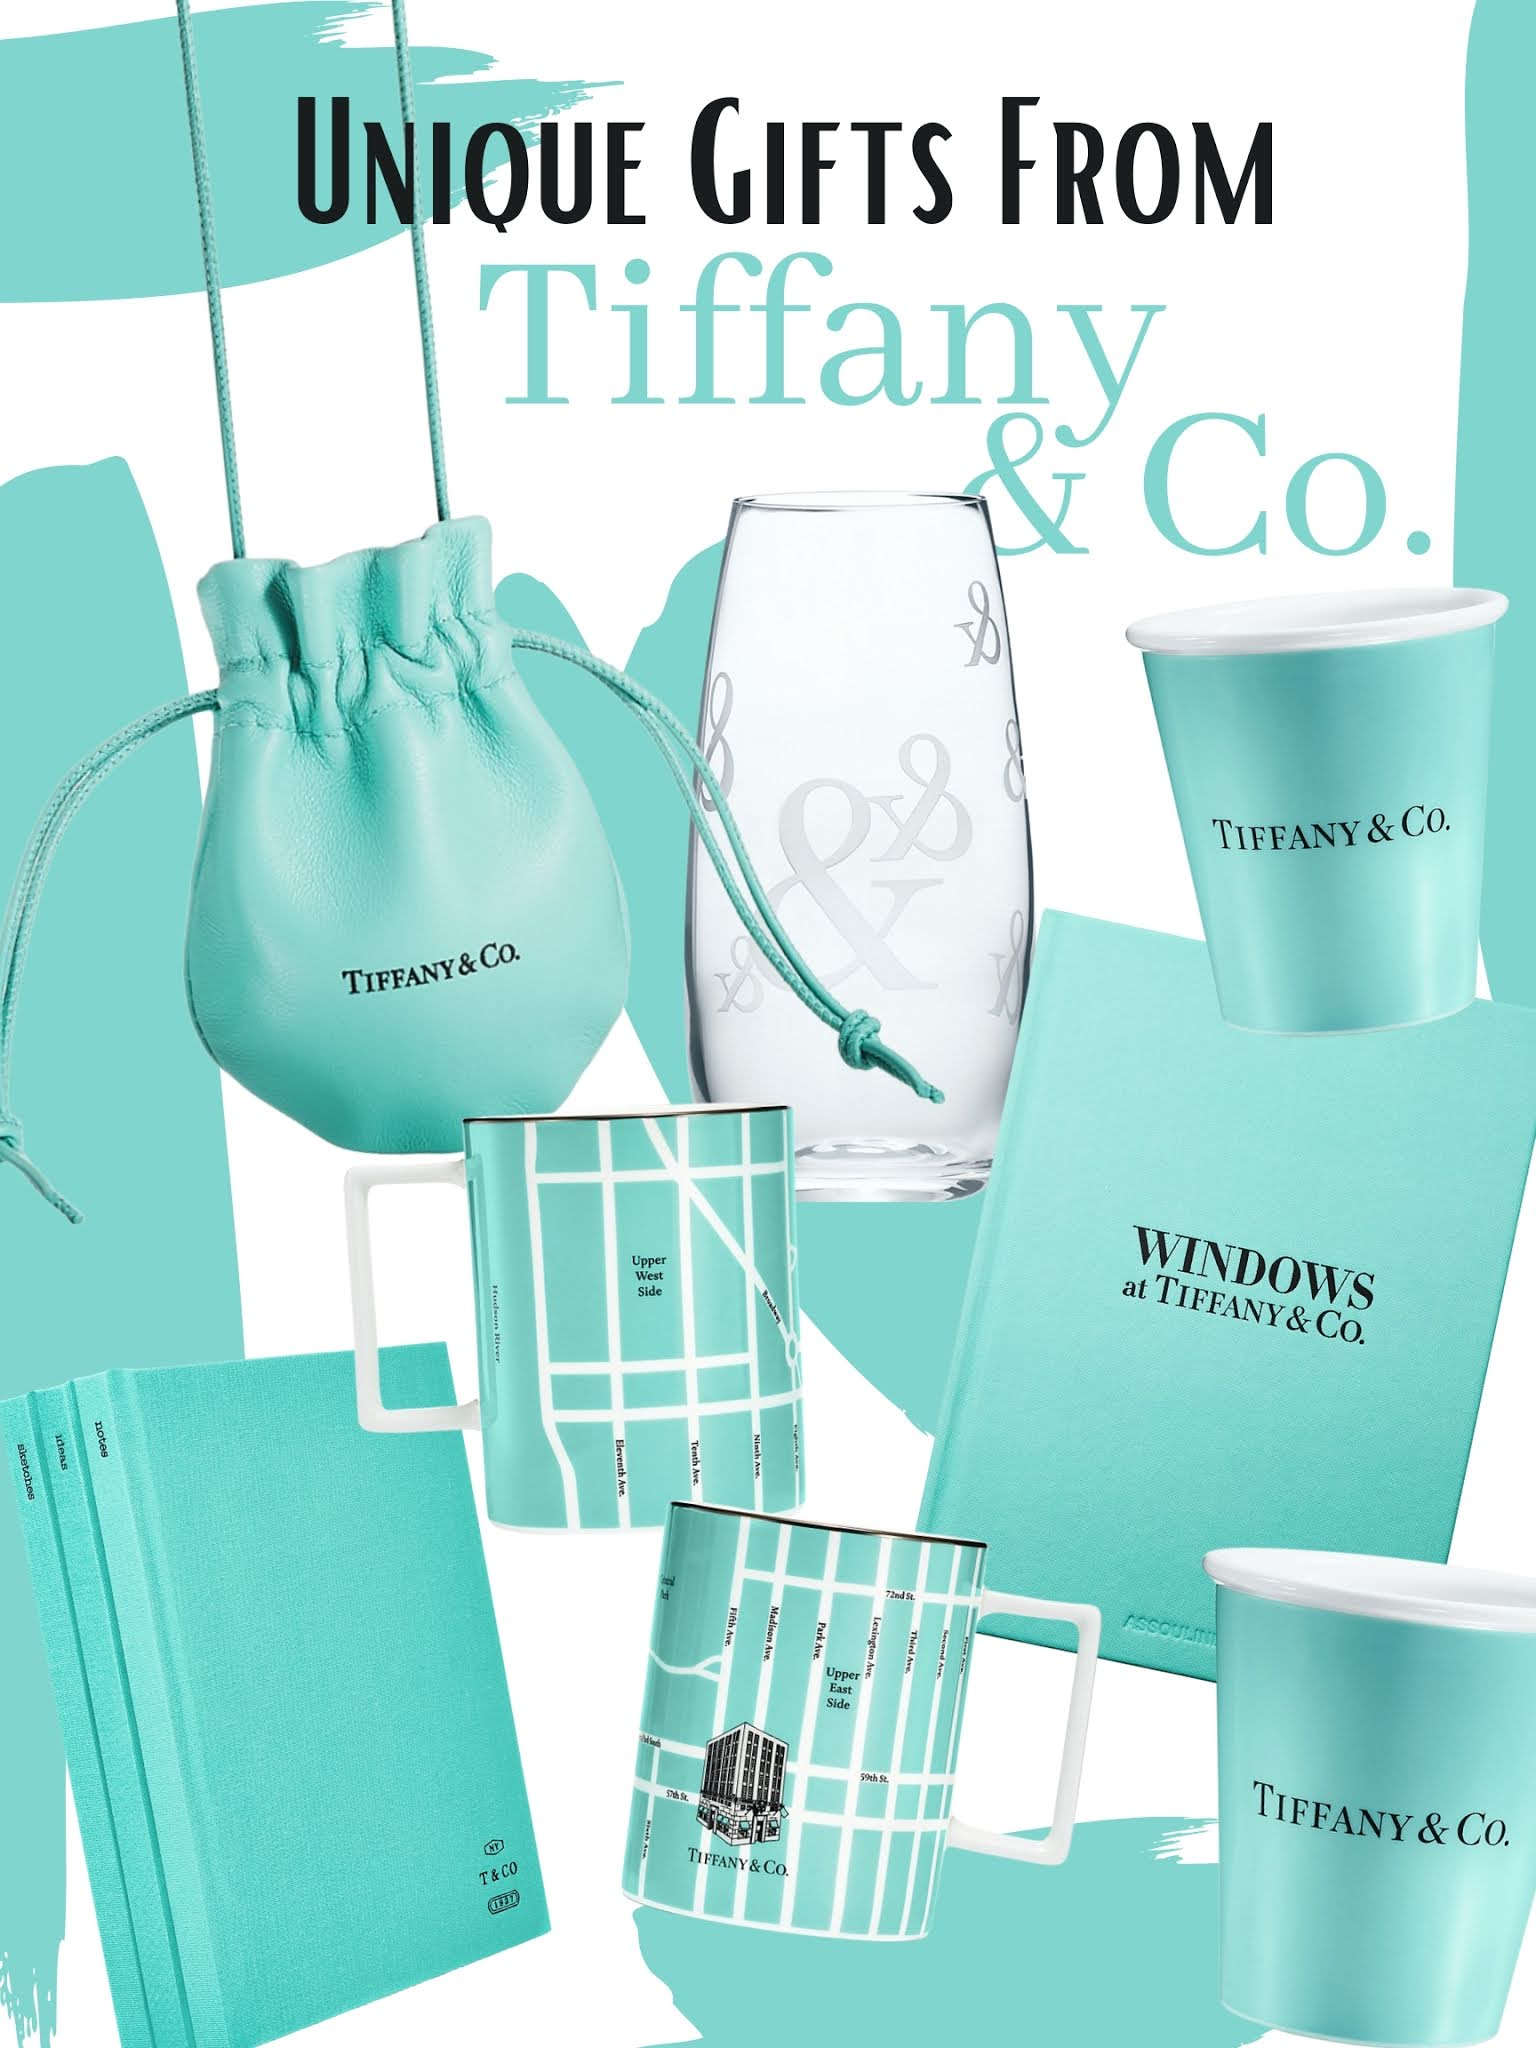 20 Unique Things Under $200 at Tiffany & Co.